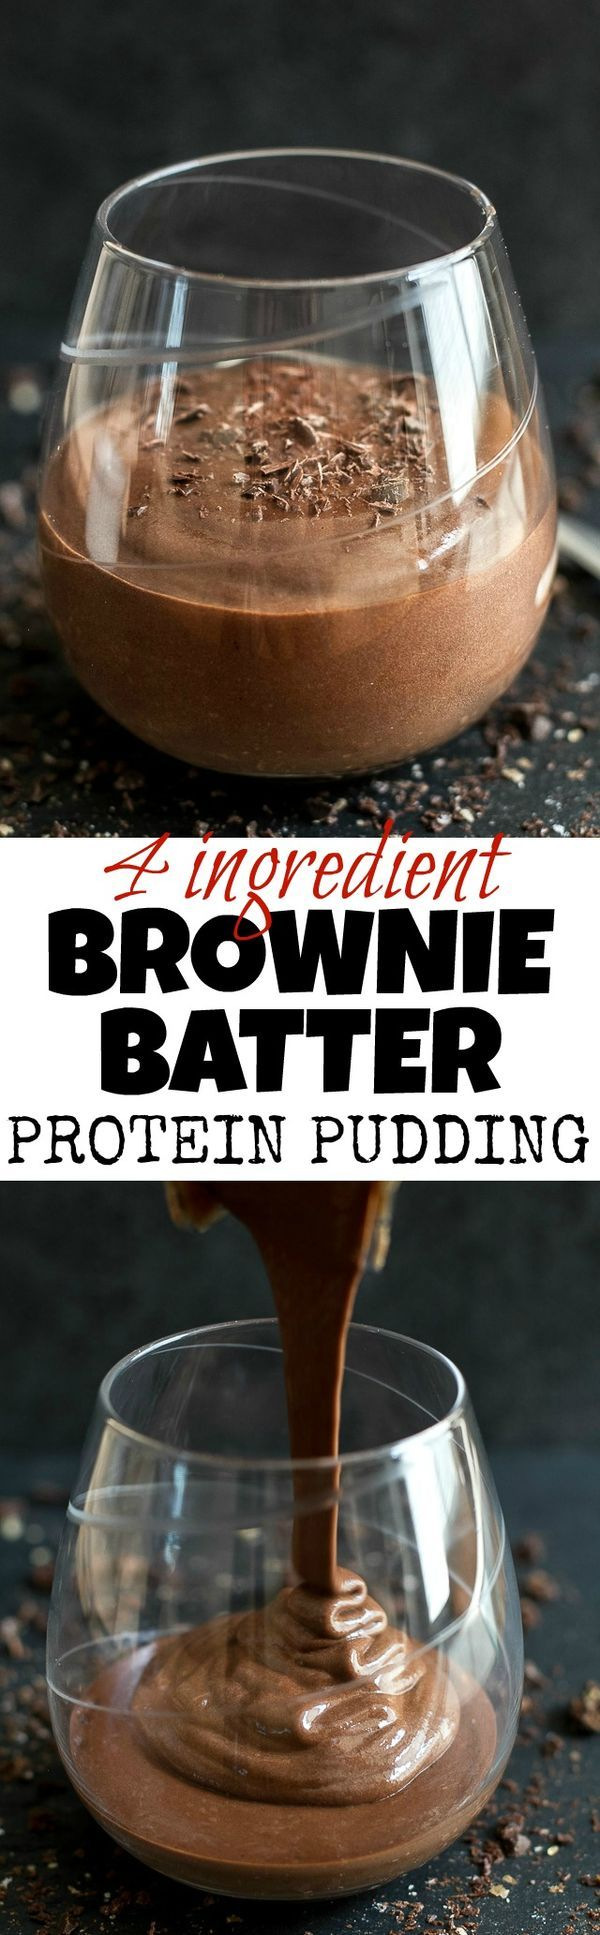 Brownie Batter Protein Pudding--high in protein and packed with a rich chocolate flavor, this addictively DELICIOUS recipe requires only 4 ingredients and 5 minutes to make! You might not believe it, but make your own and it will soon become one of your most favorite desserts!